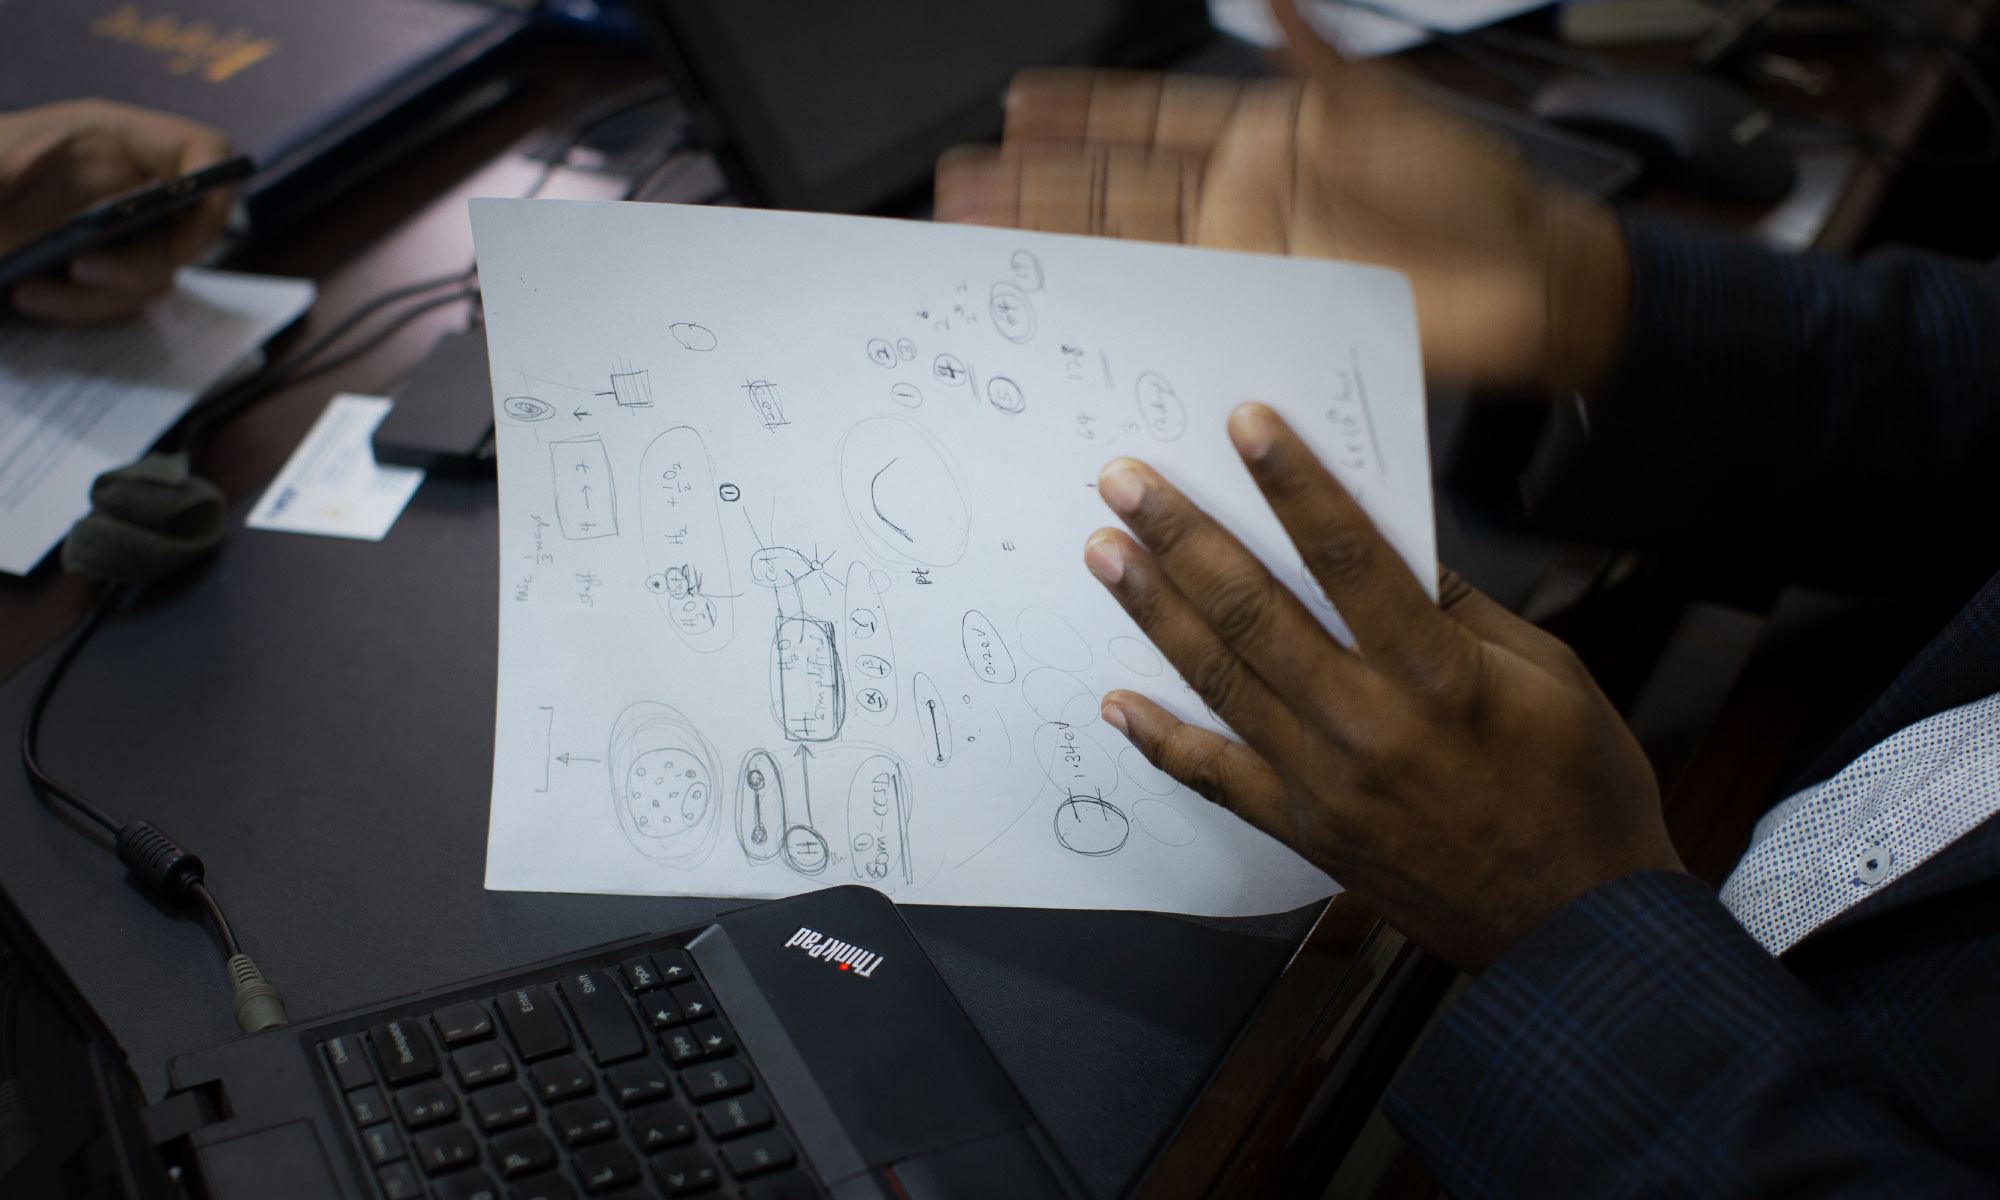 Close-up of a page of drawings and calculations, next to a gesturing hand.